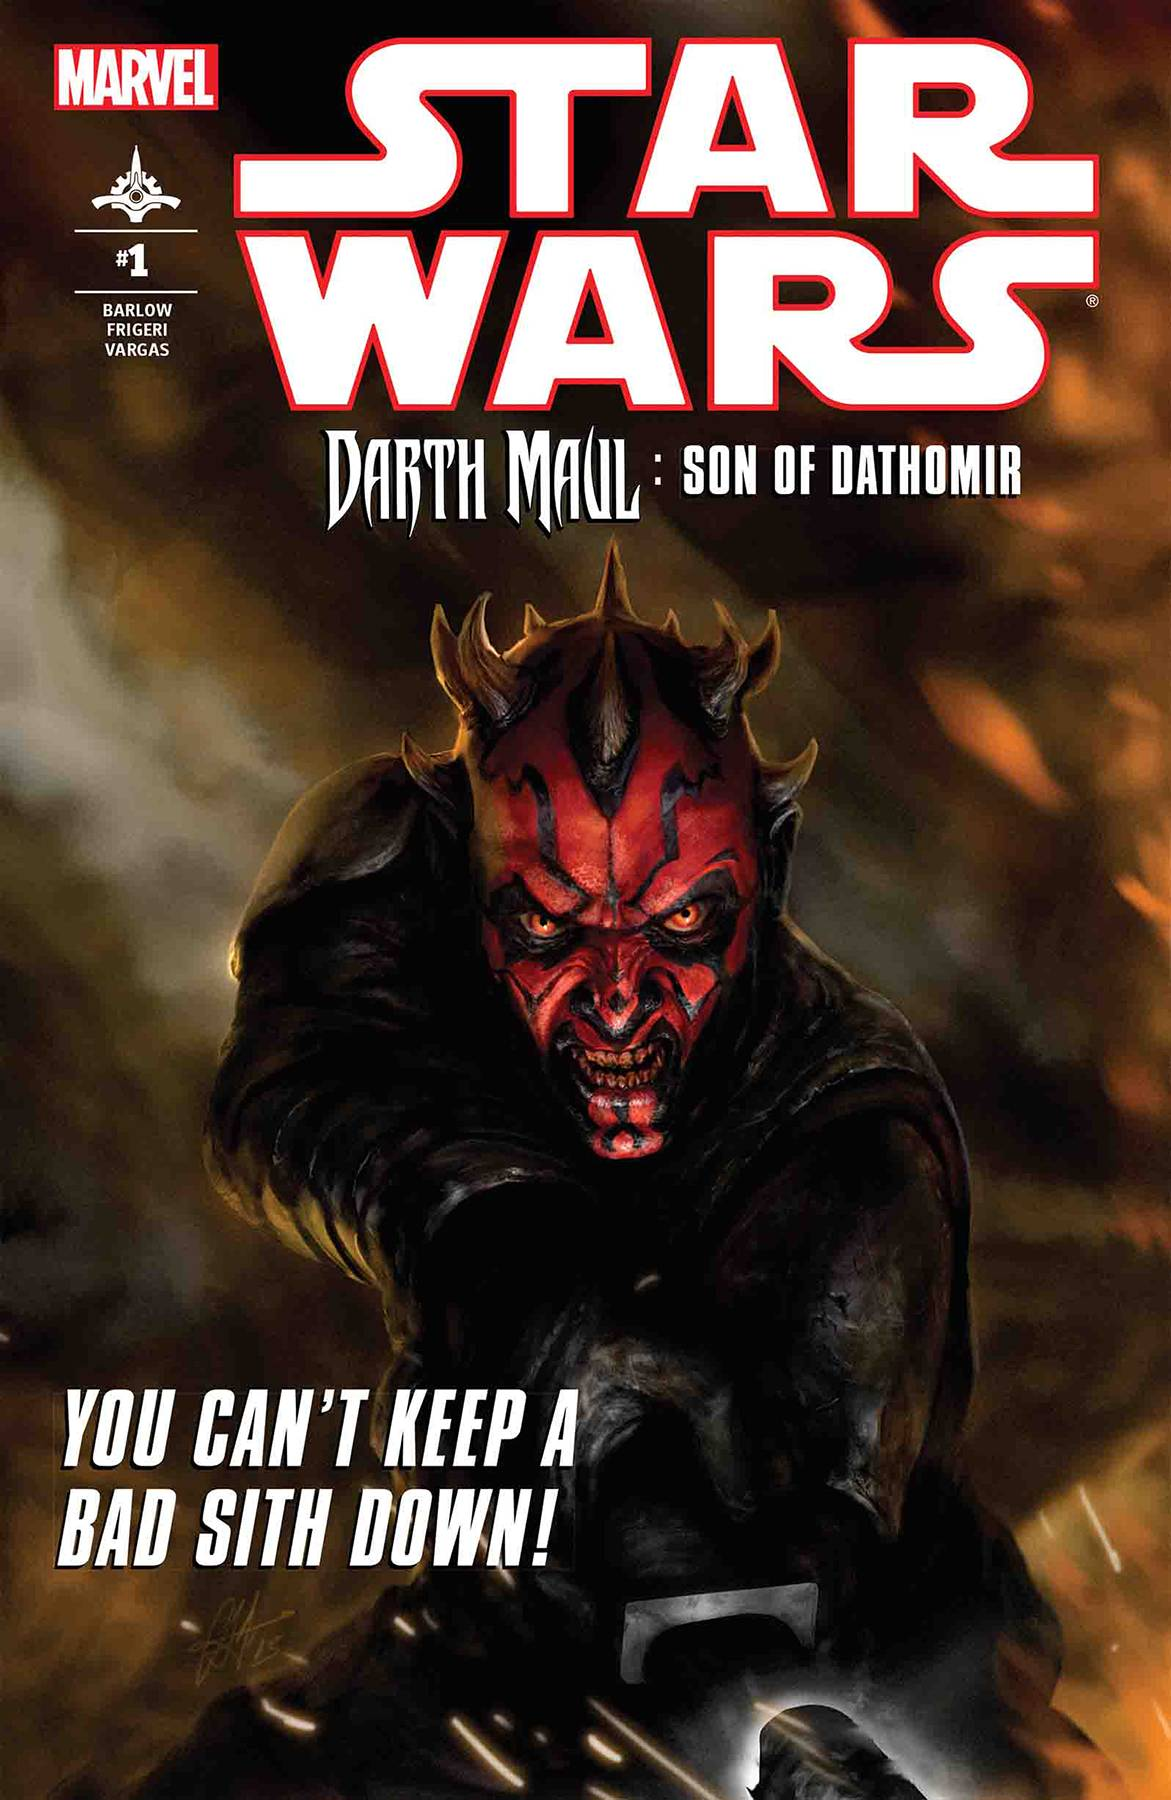 TRUE BELIEVERS STAR WARS DARTH MAUL 1.jpg